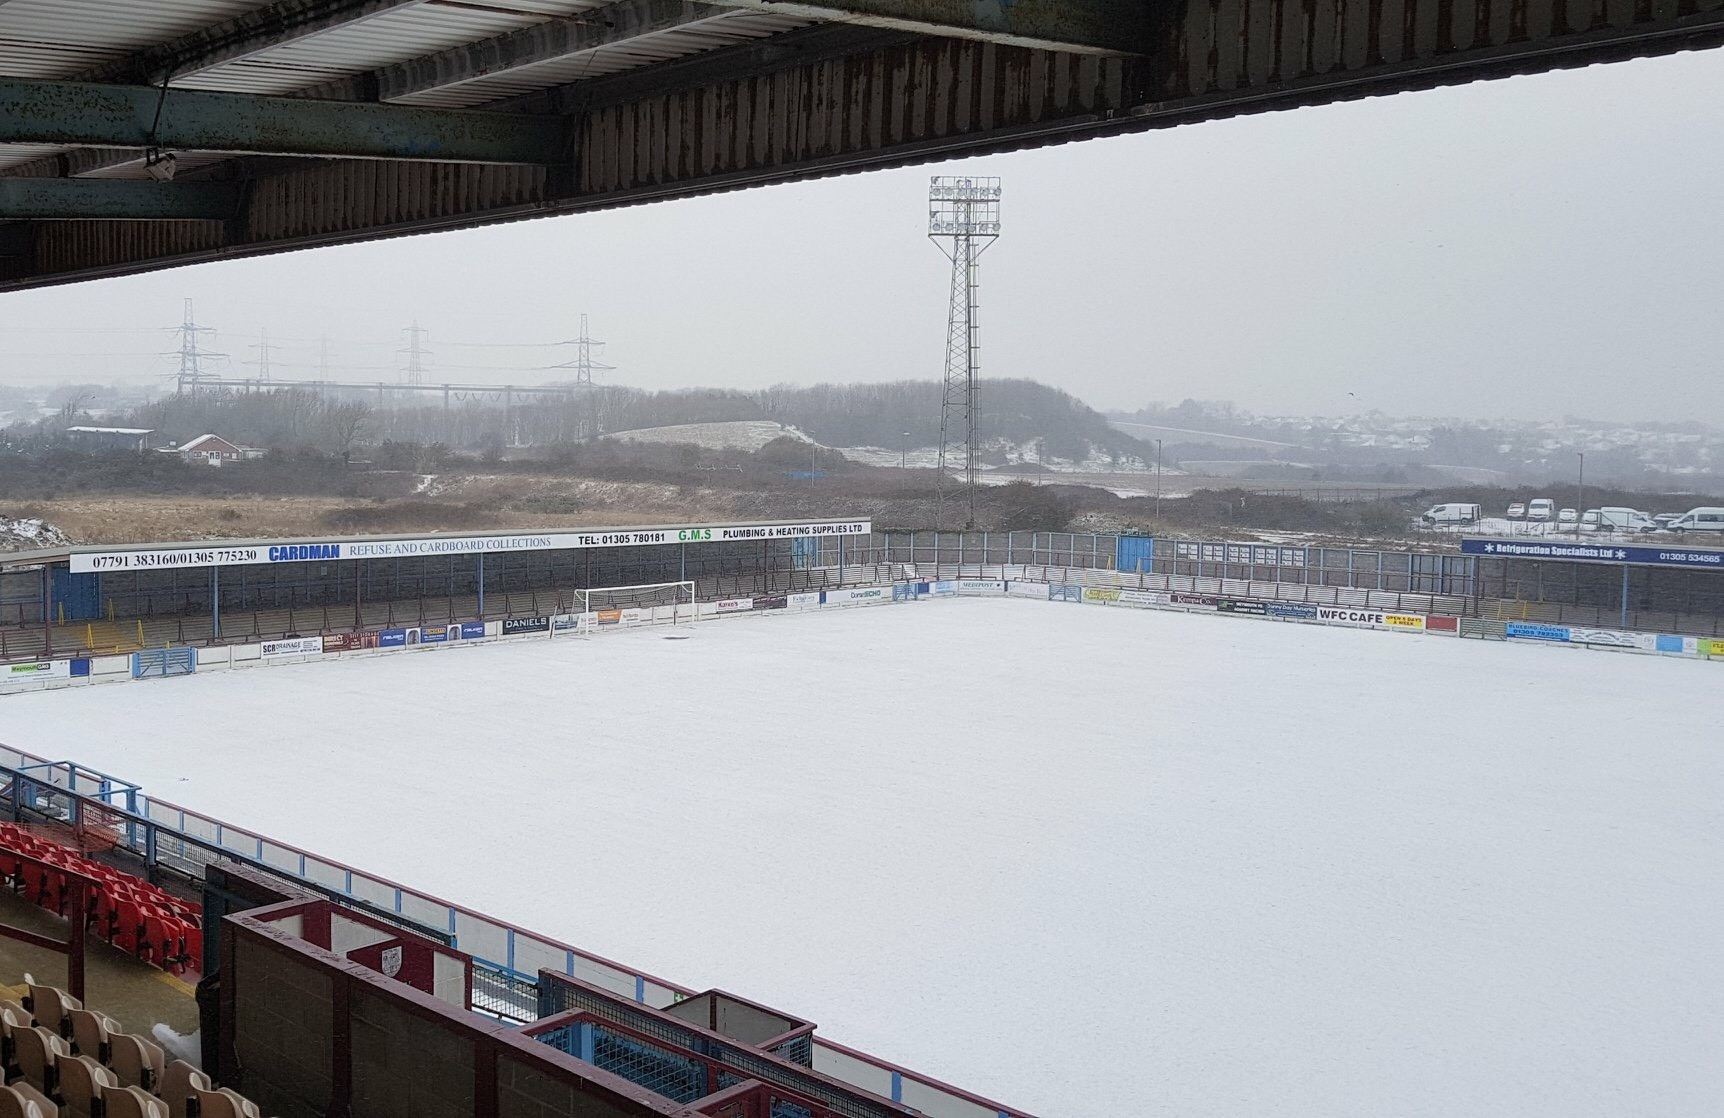 Football: Weymouth, Dorchester, Bridport, Dorset Premier League and Portland United matches postponed